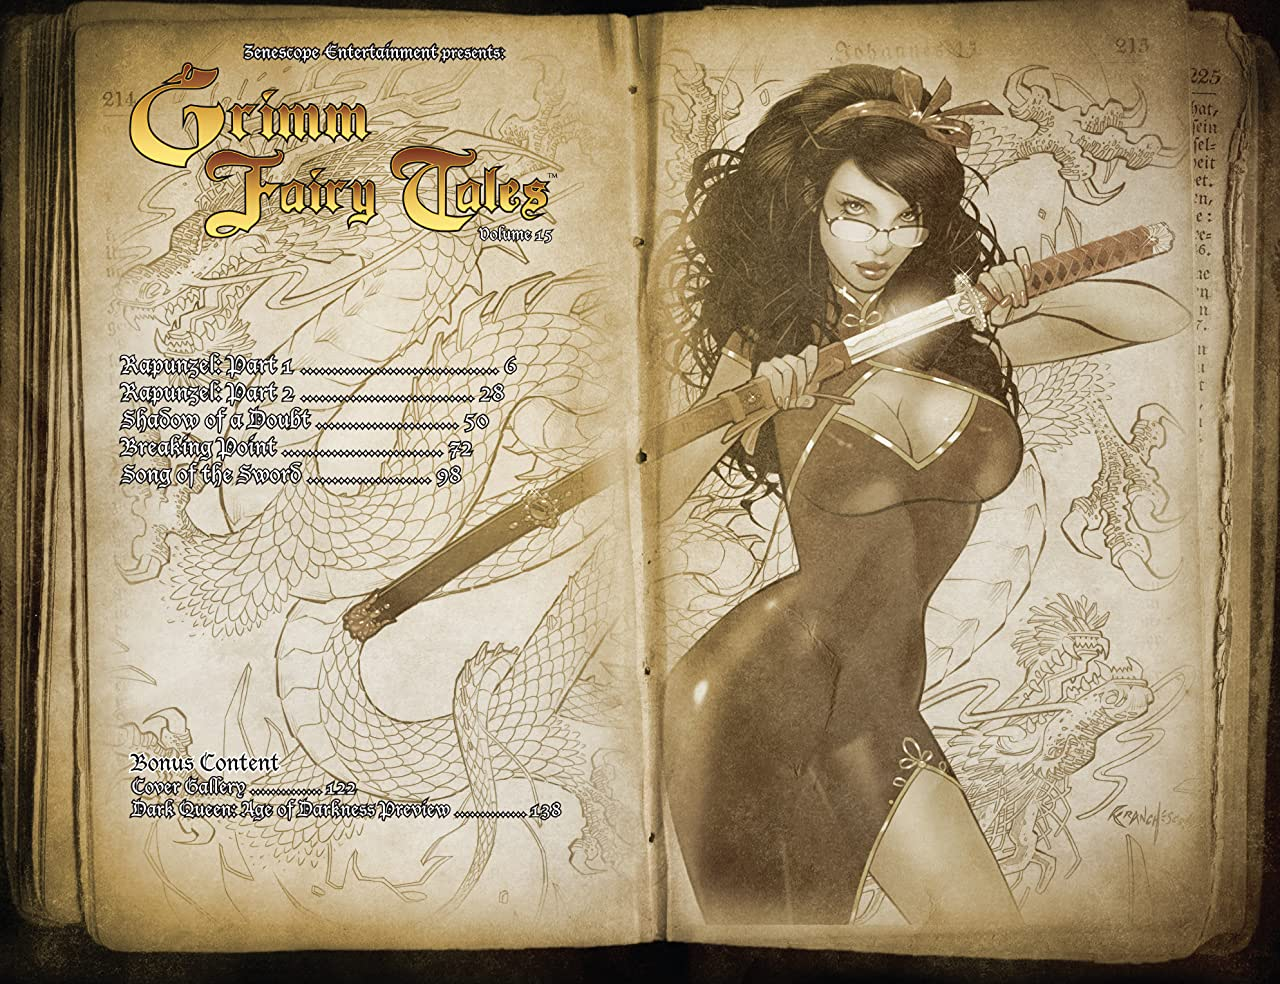 Grimm Fairy Tales Vol. 15